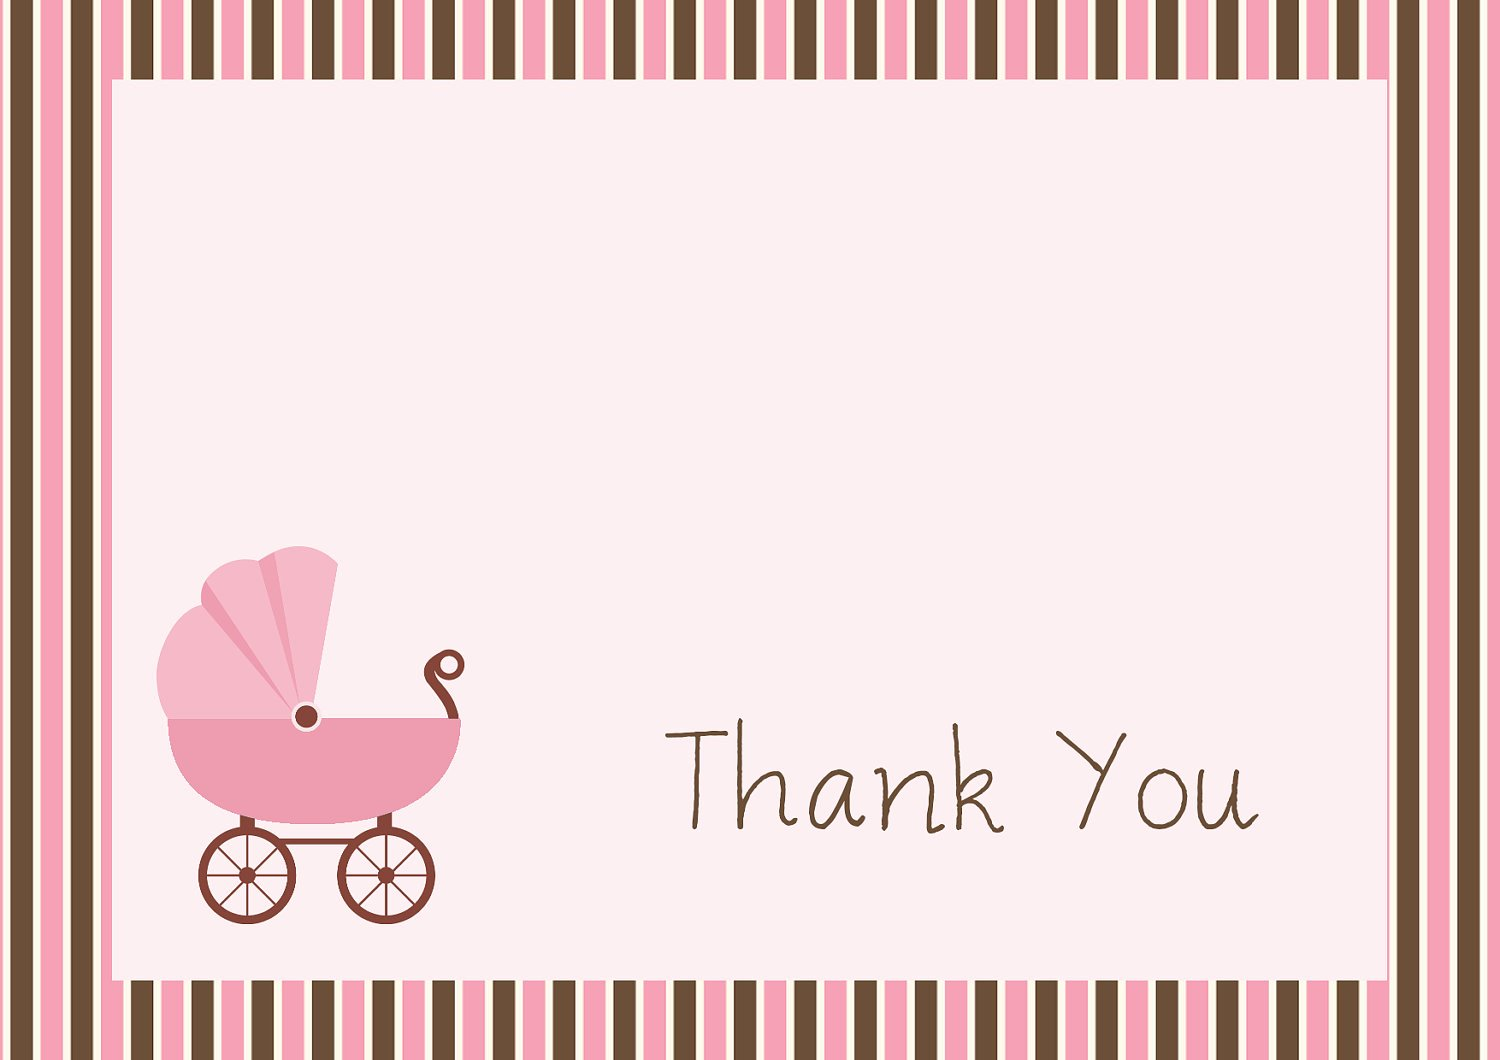 Free Printable Baby Shower Card Best Of 34 Printable Thank You Cards for All Purposes